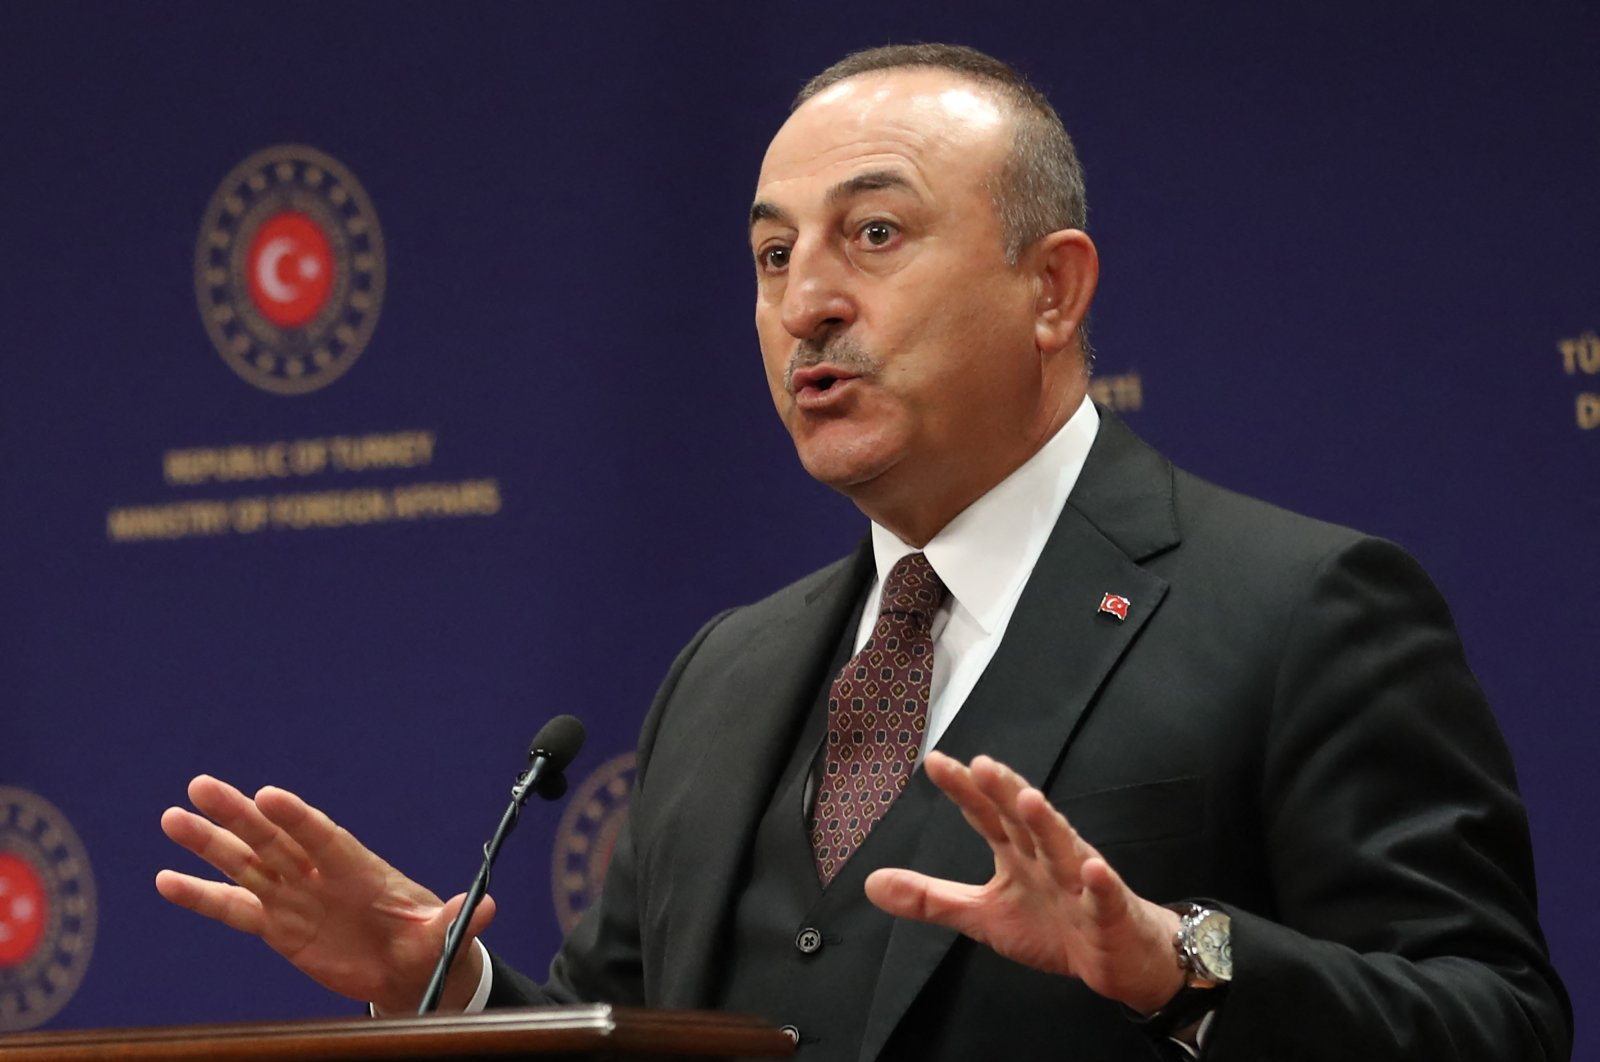 Turkish Foreign Minister Mevlüt Çavuşoğlu speaks at a press conference following a meeting with his Slovakian counterpart in Ankara, Turkey, March 16, 2021. (AFP Photo)